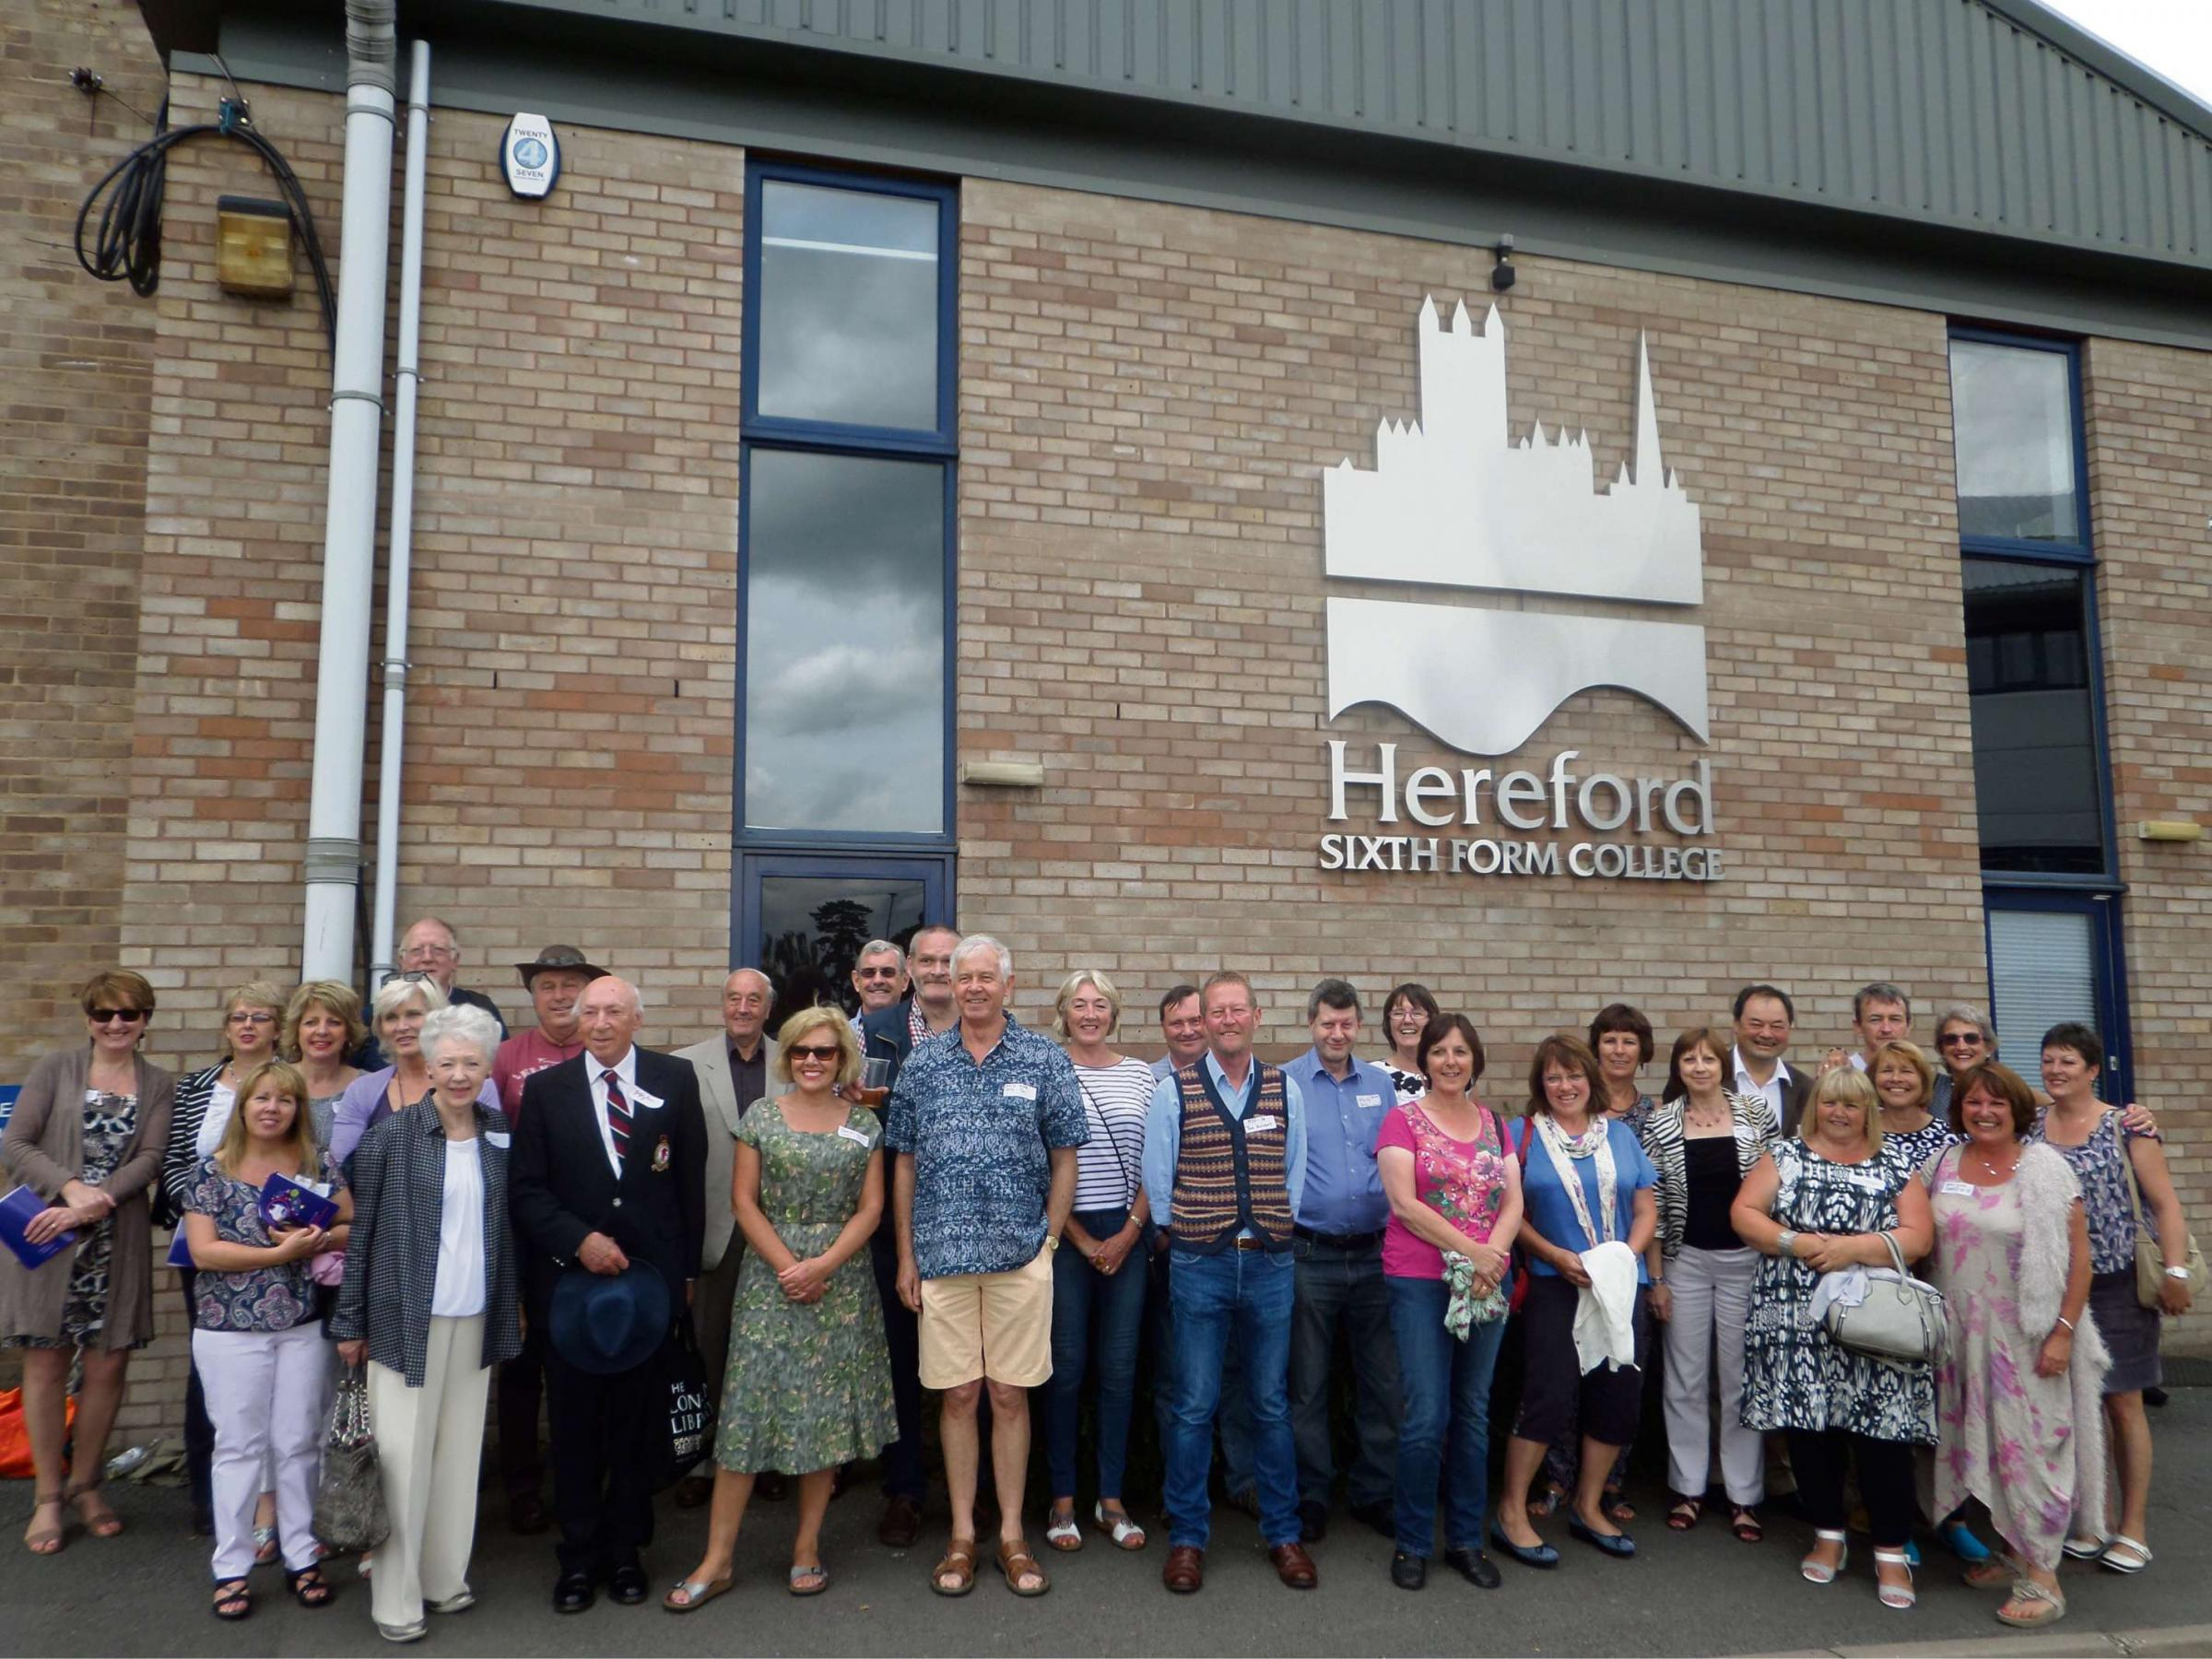 Hereford Sixth Form College celebrates 40th anniversary